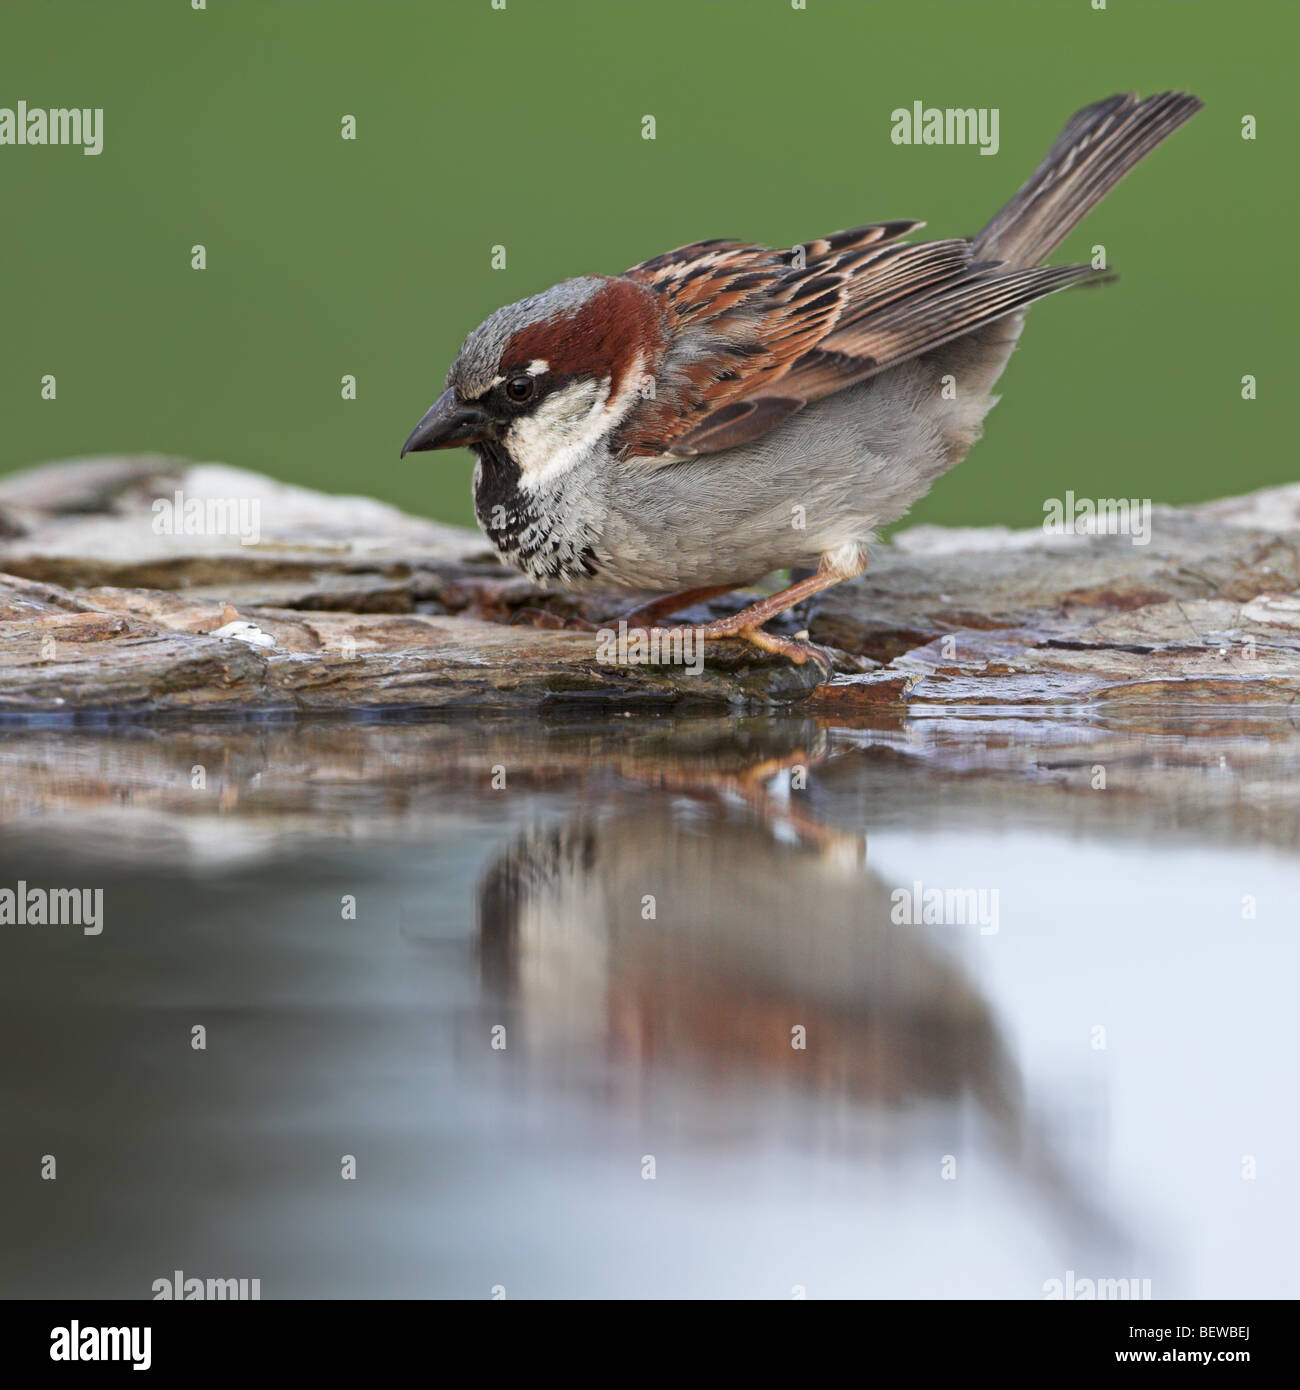 House Sparrow (Passer domesticus) sitting at the waters edge, side view Stock Photo